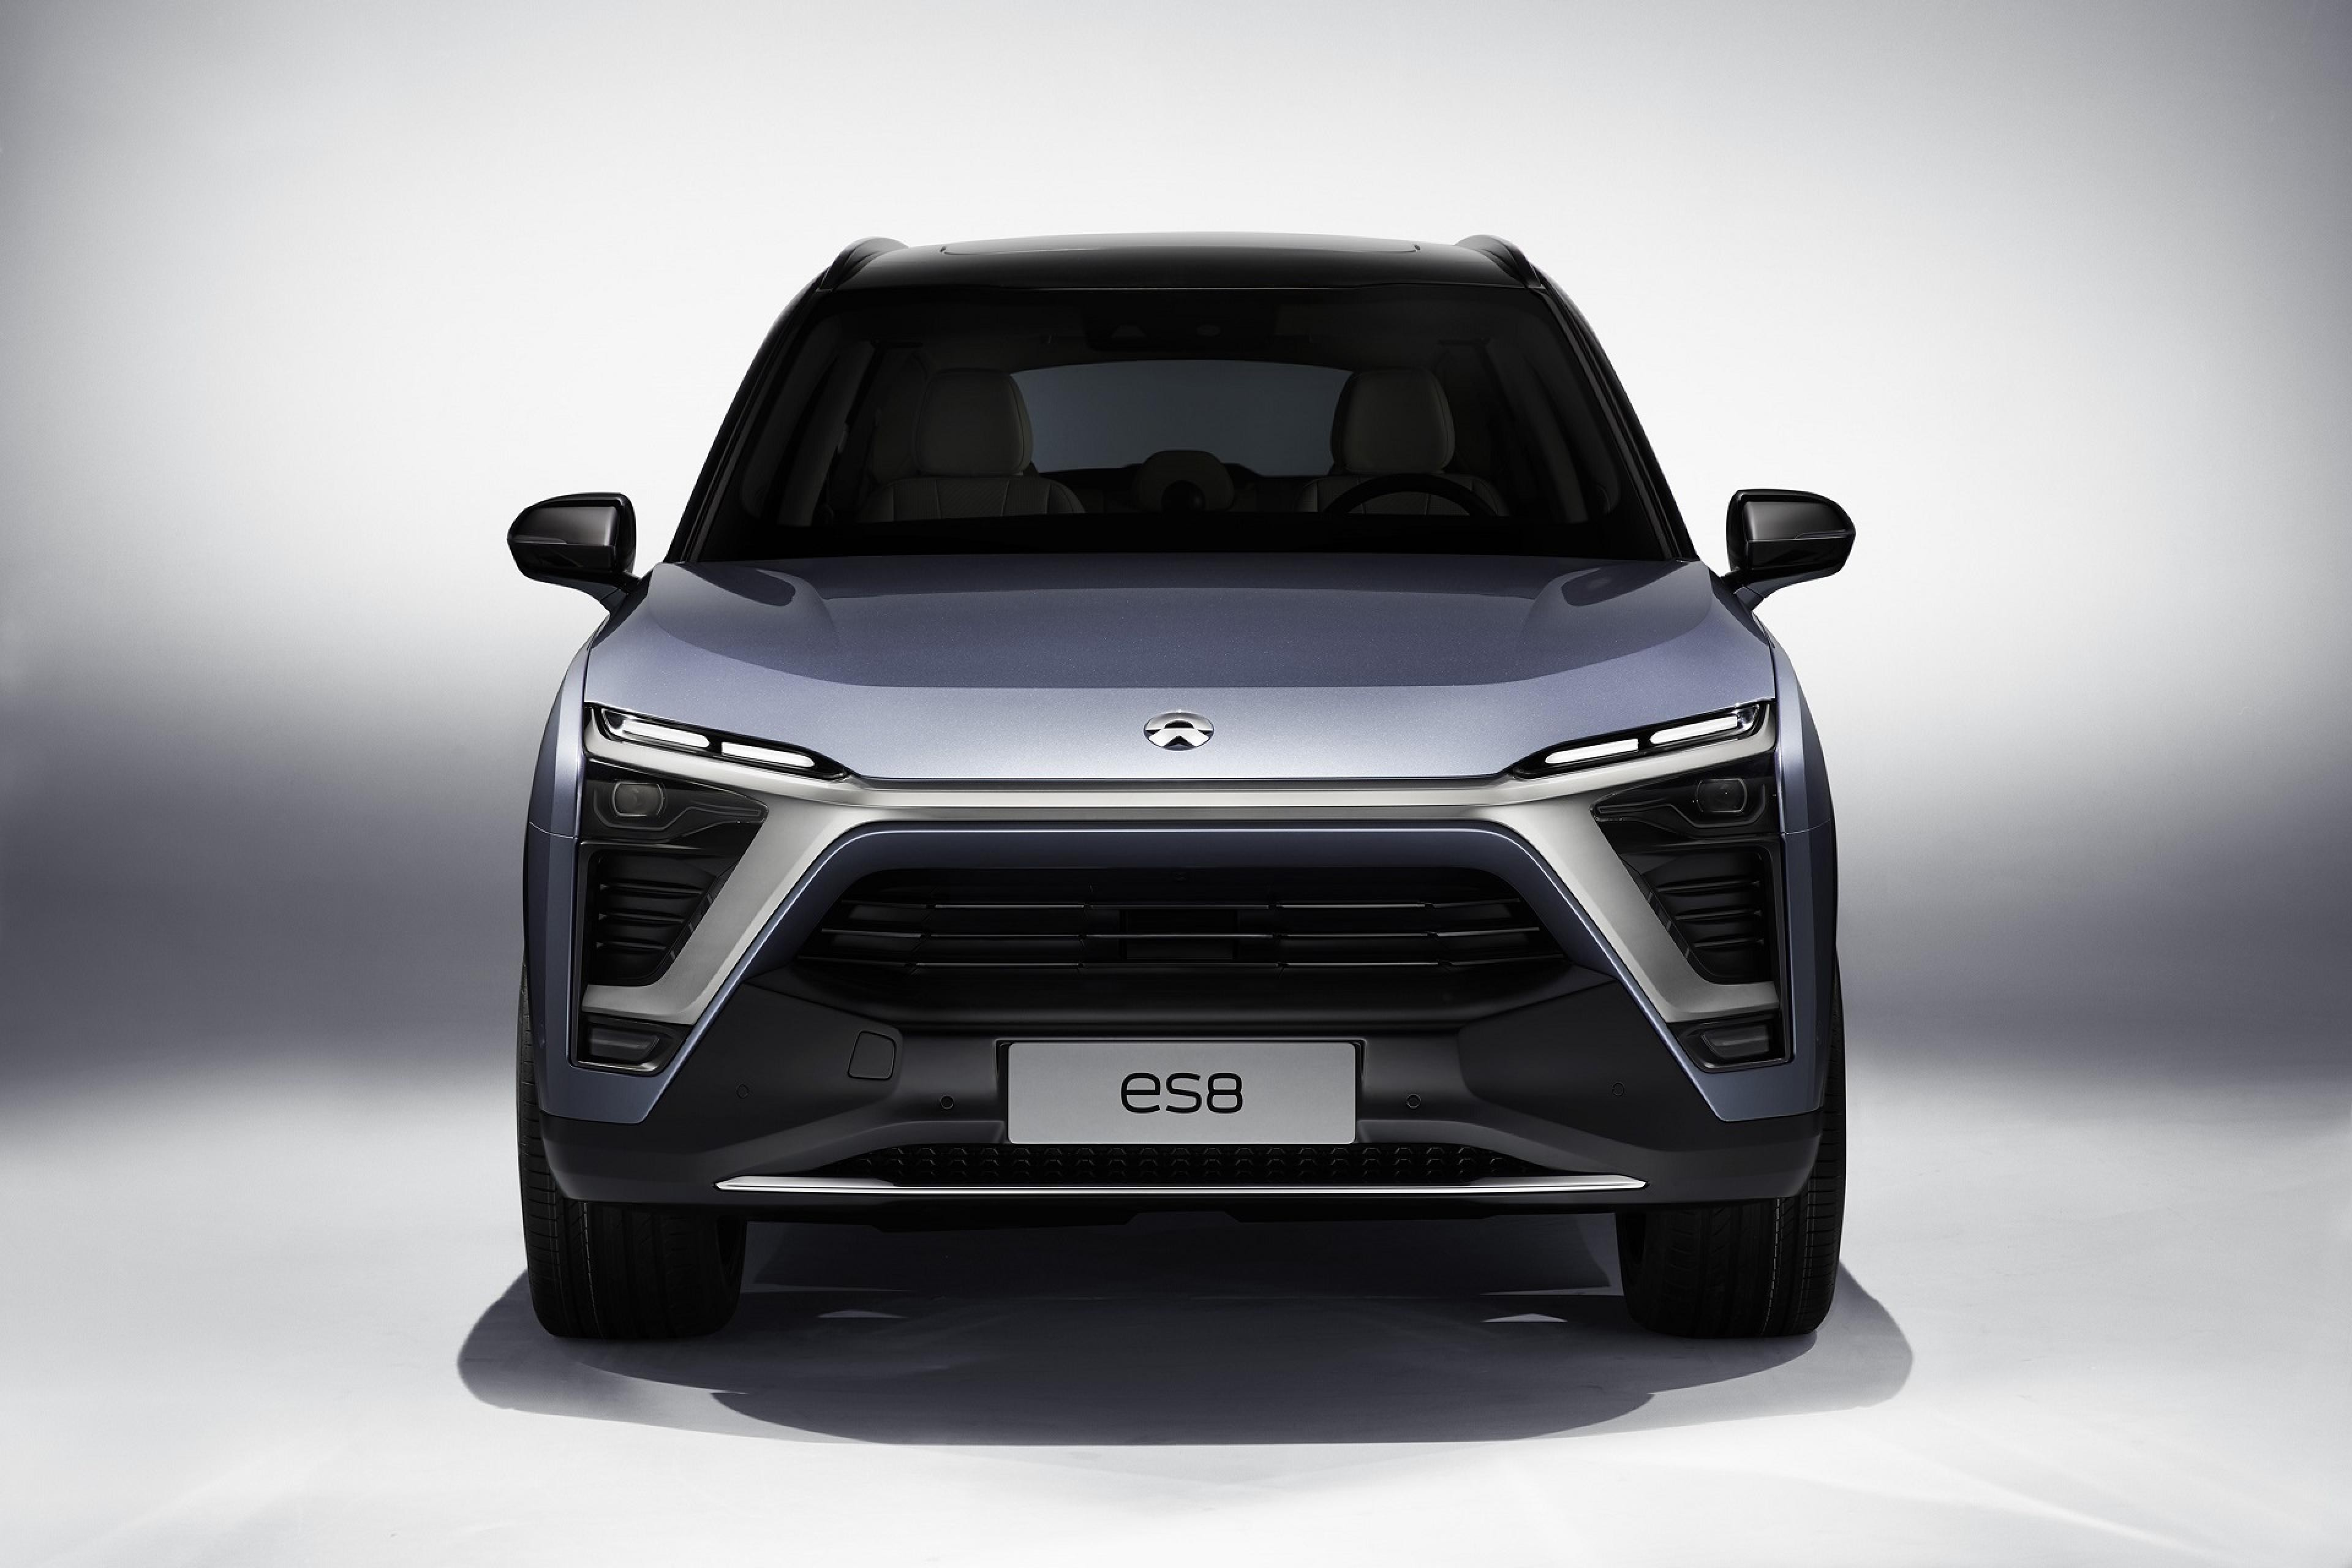 wallpaper nextev nio es8 suv electric cars 2018 cars 4k cars bikes 14660. Black Bedroom Furniture Sets. Home Design Ideas